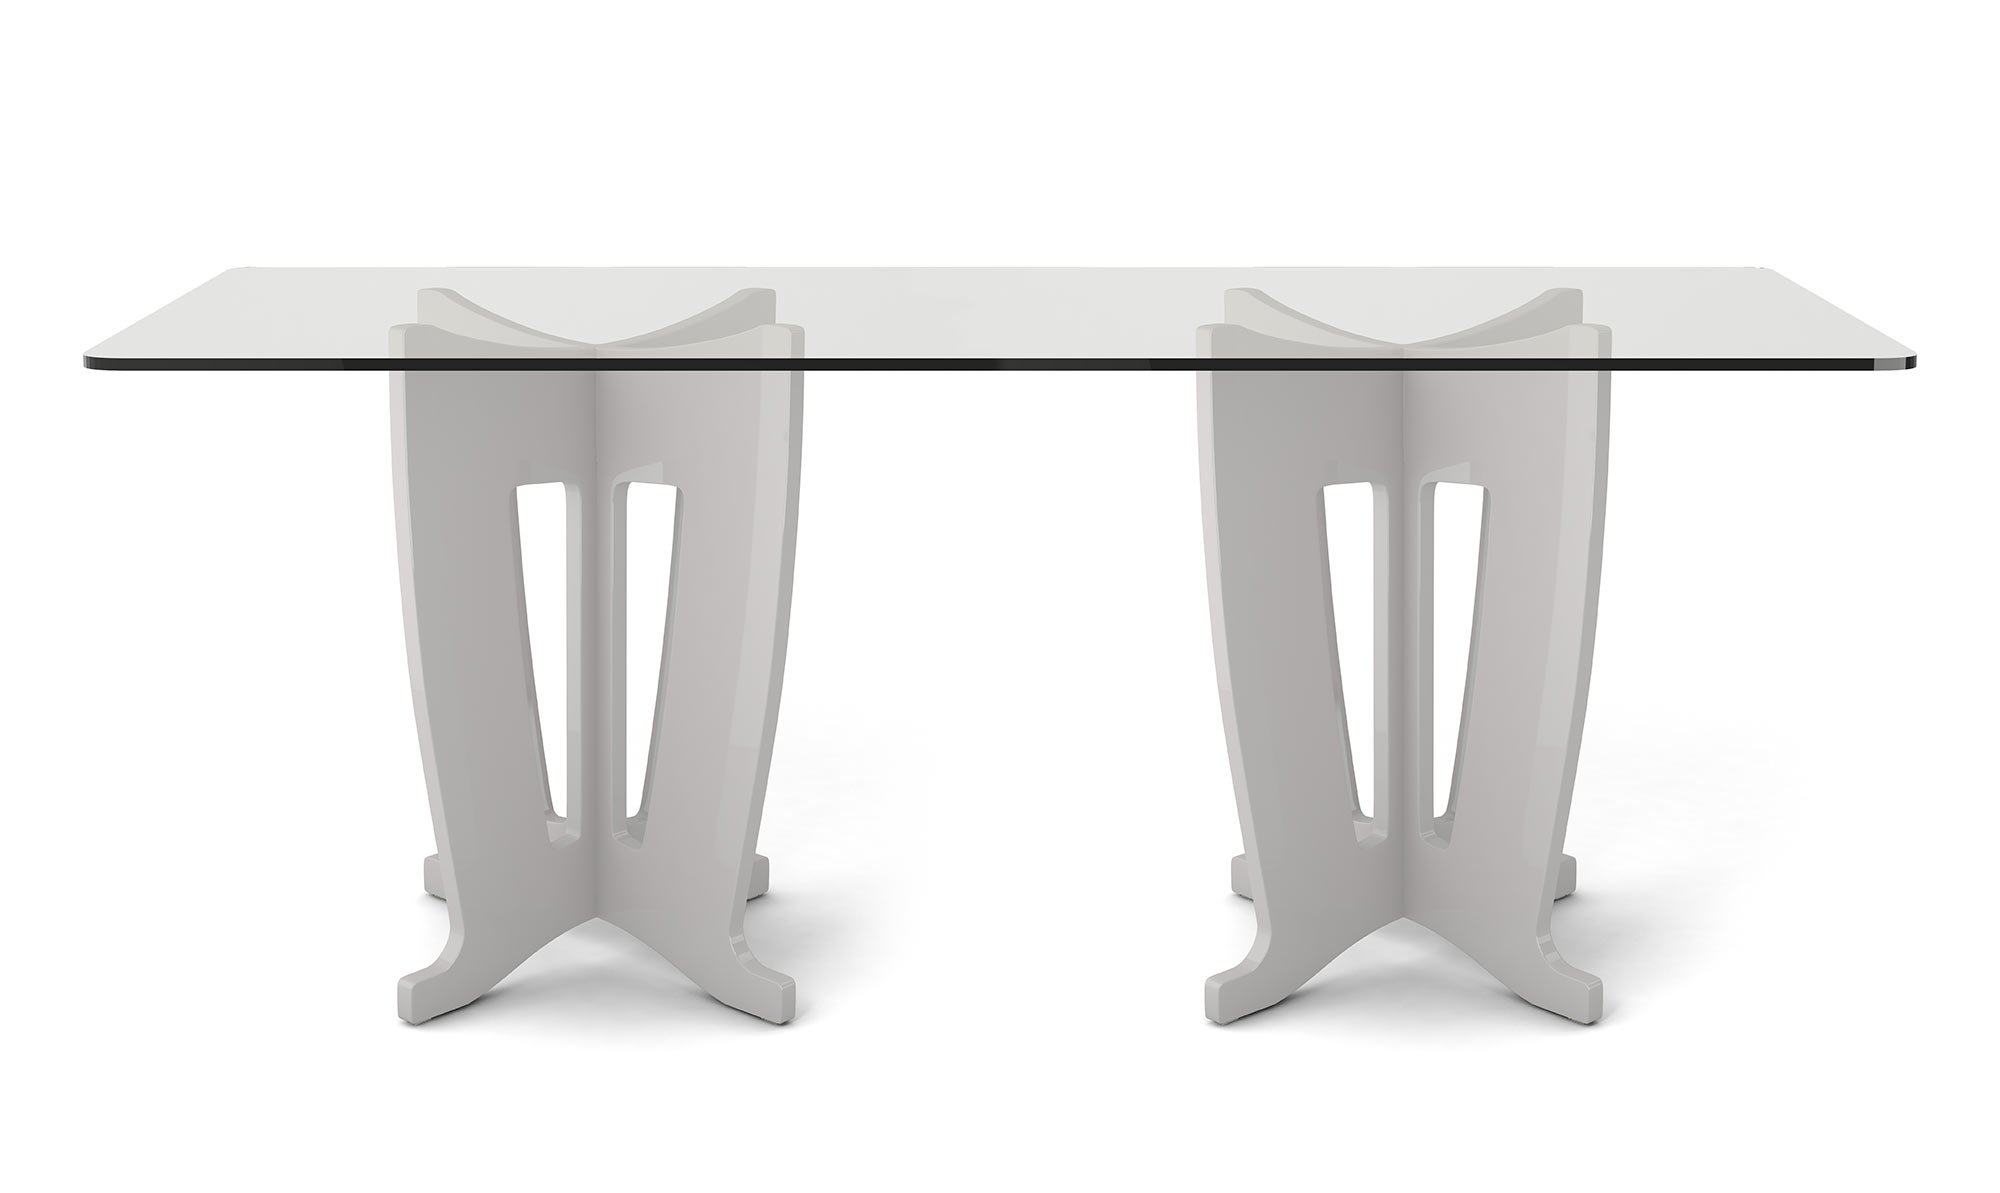 Jane Off White 2 0 78 64 Inch Tempered Glass Table Top